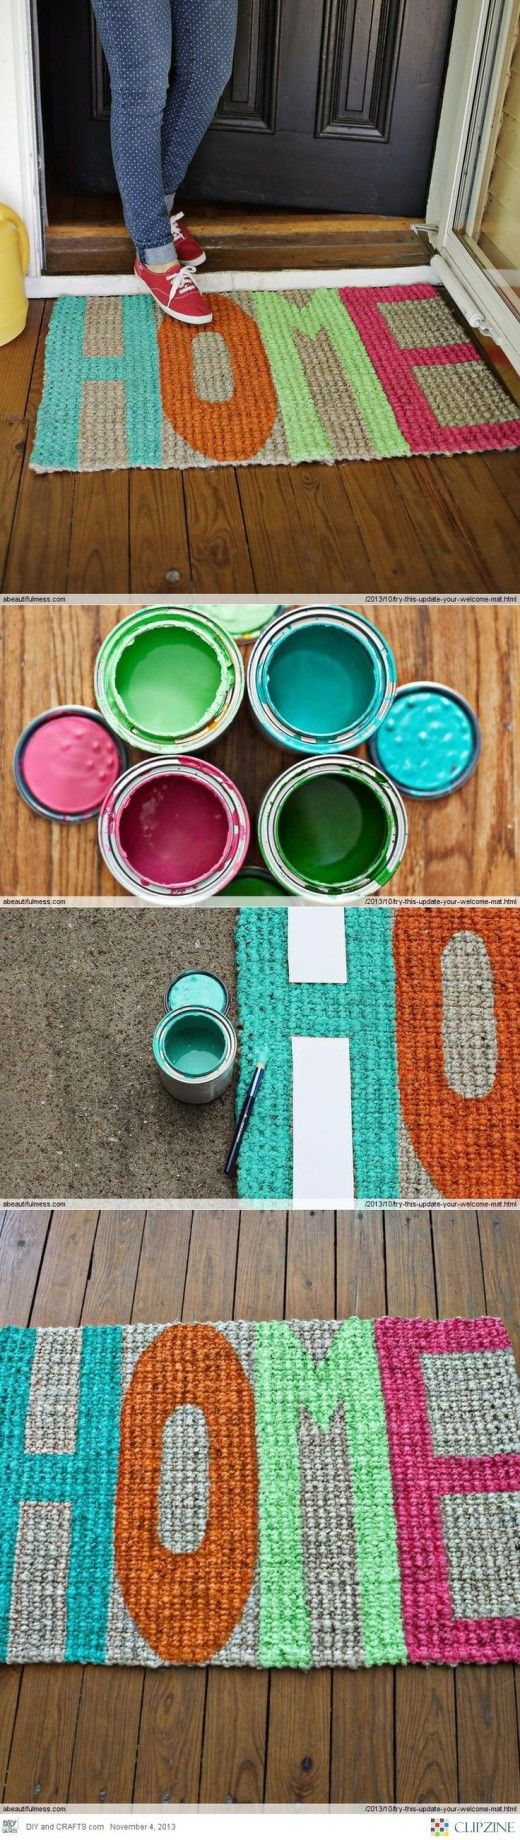 The best images about diy on Pinterest Picture coasters